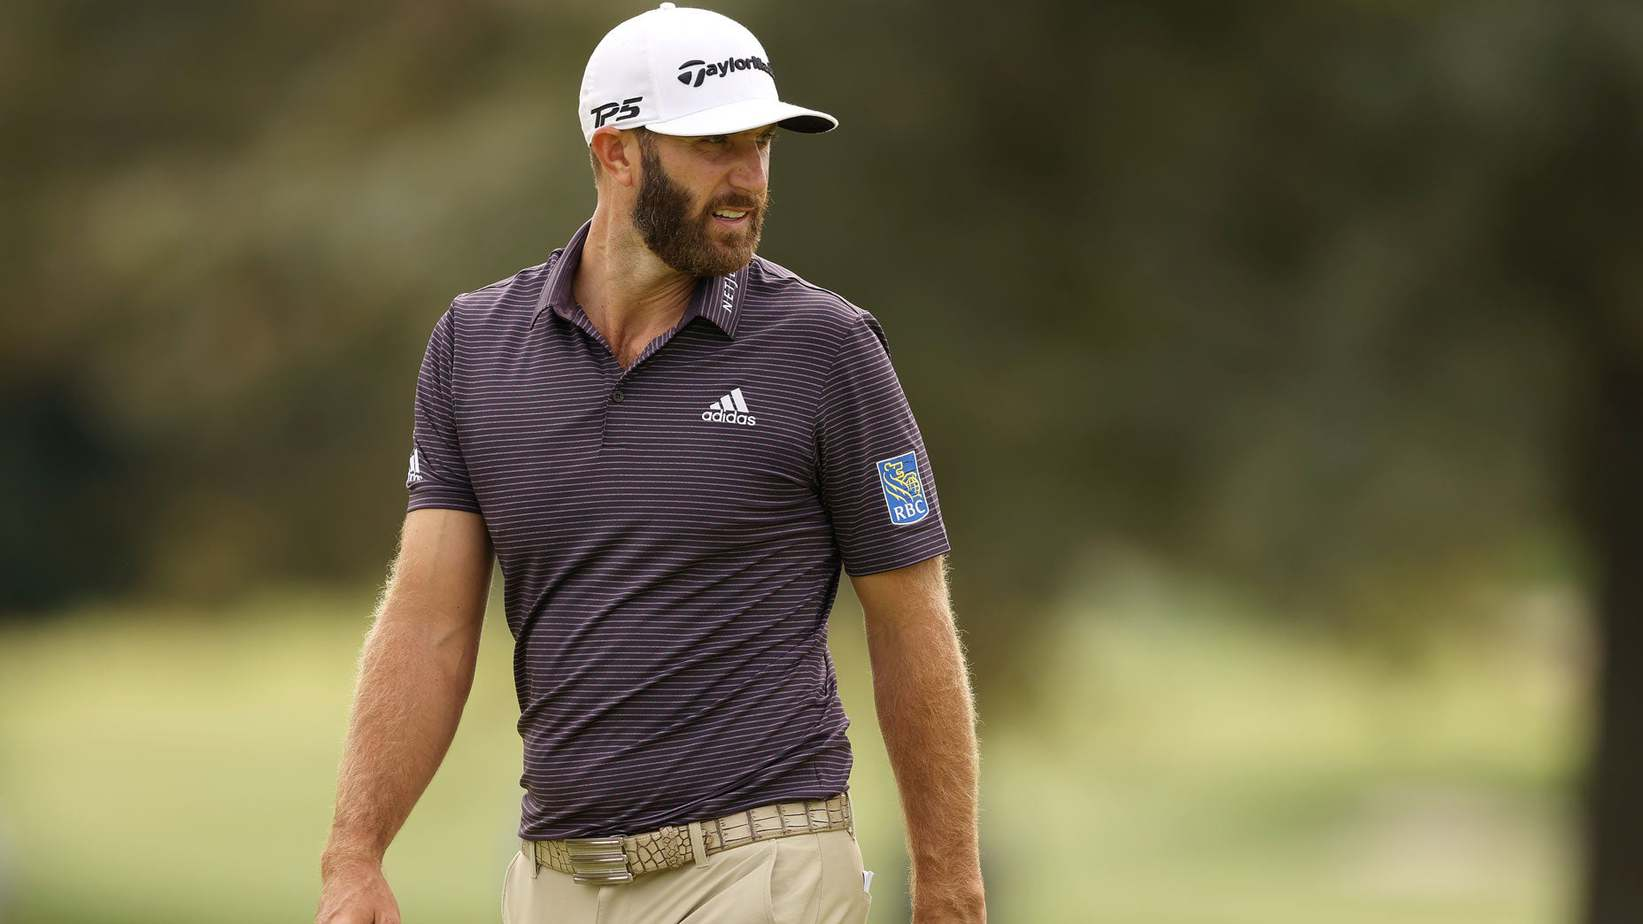 Dustin-Johnson-Richest-Golfers-of-all-time